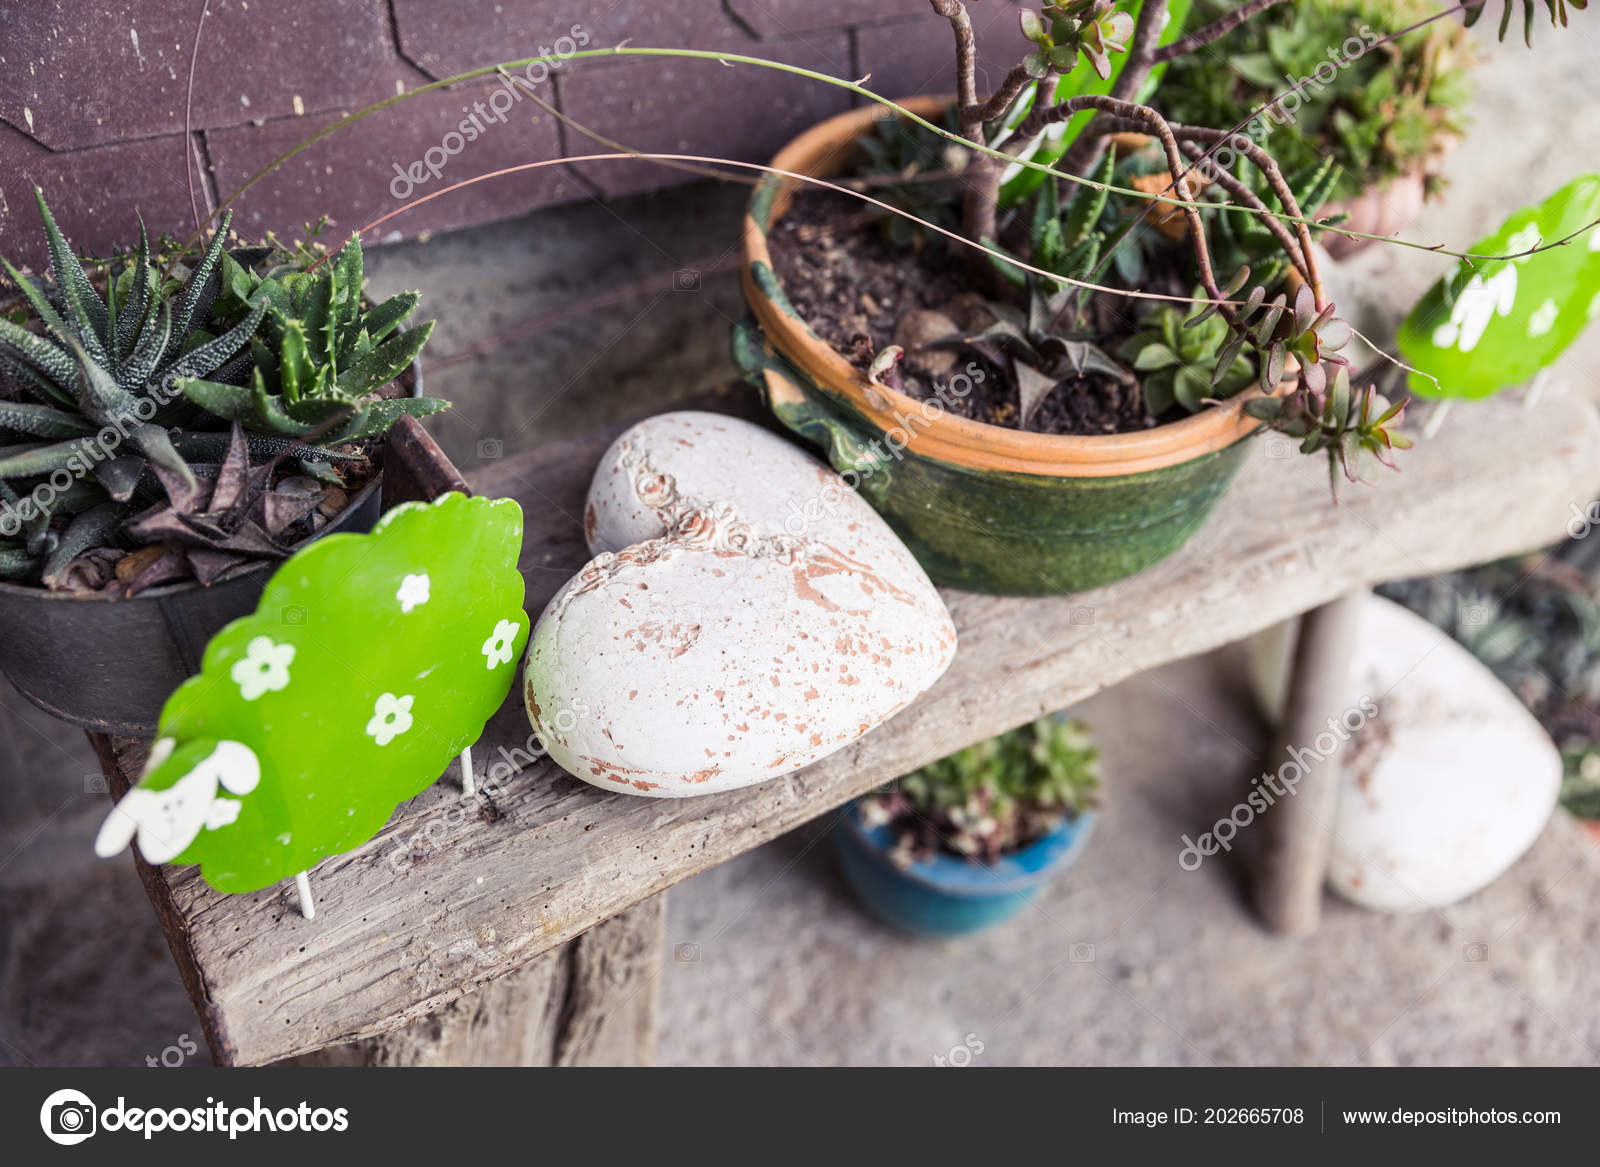 Marvelous Shabby Chic Garden Decorations Wooden Bench Stock Photo Caraccident5 Cool Chair Designs And Ideas Caraccident5Info